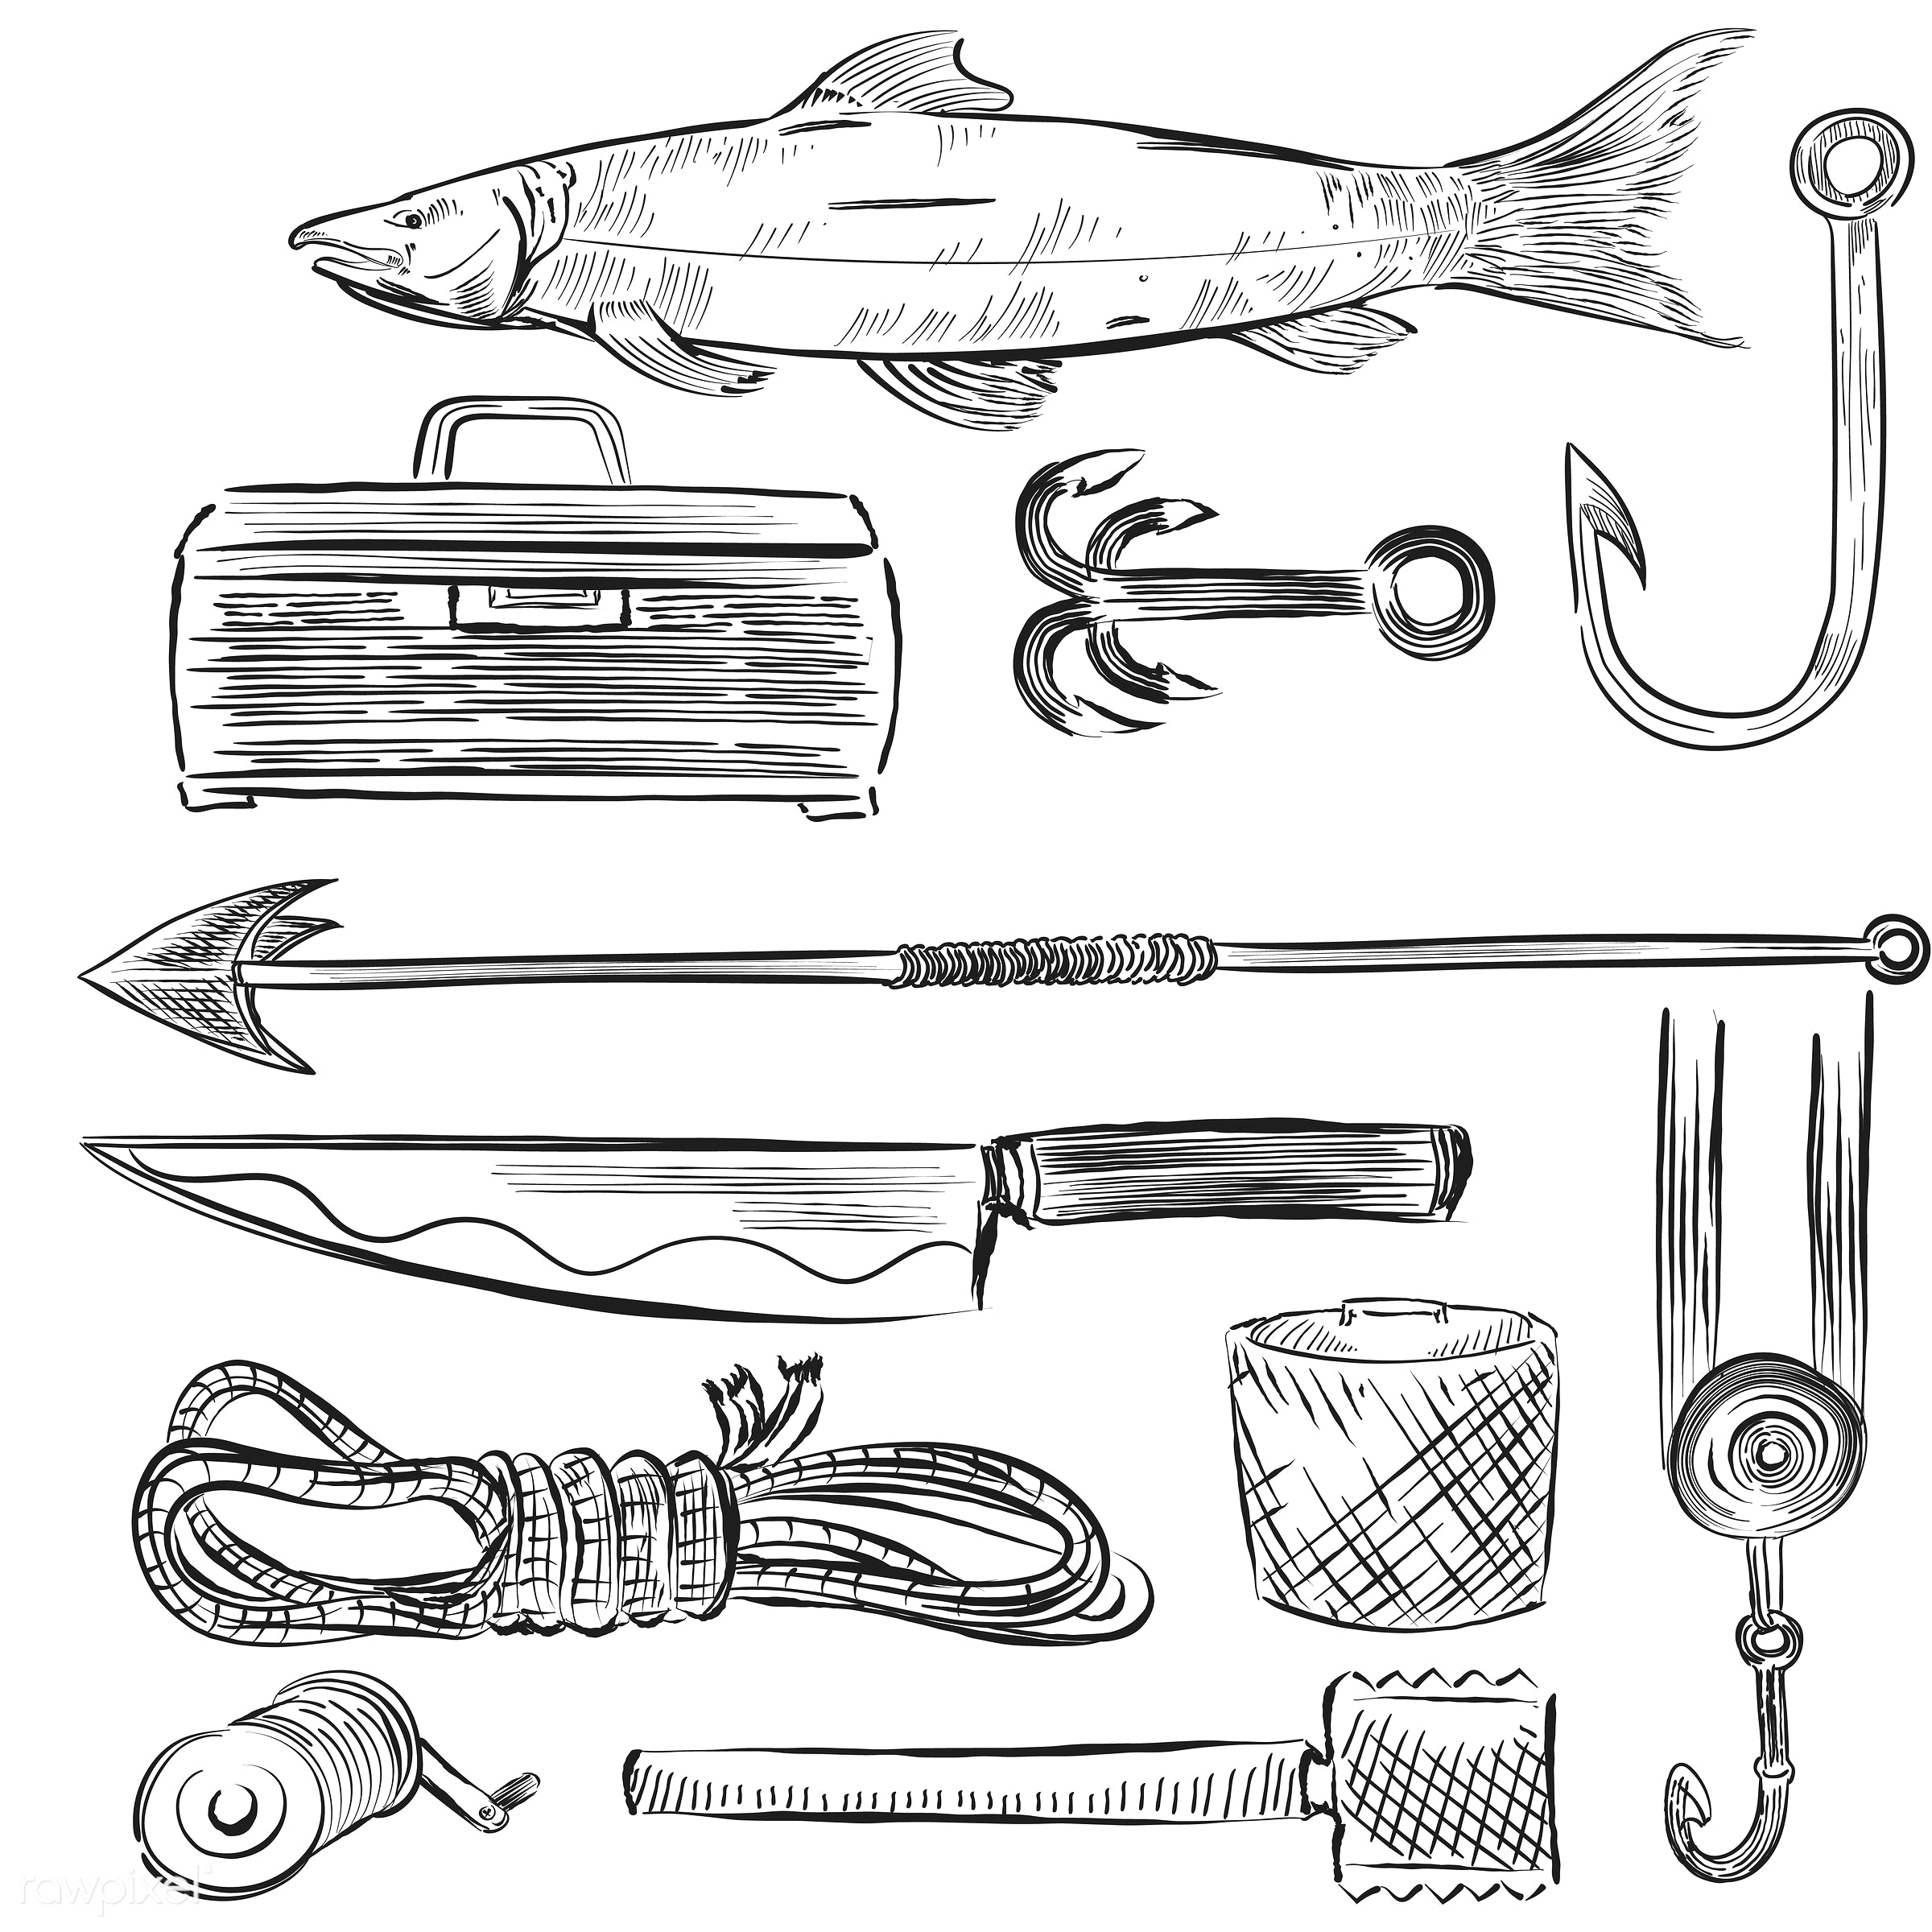 Illustrated set of fishing equipment - fishnet, isolated, rope, antique, black, collection, design, drawing, equipment, fish...